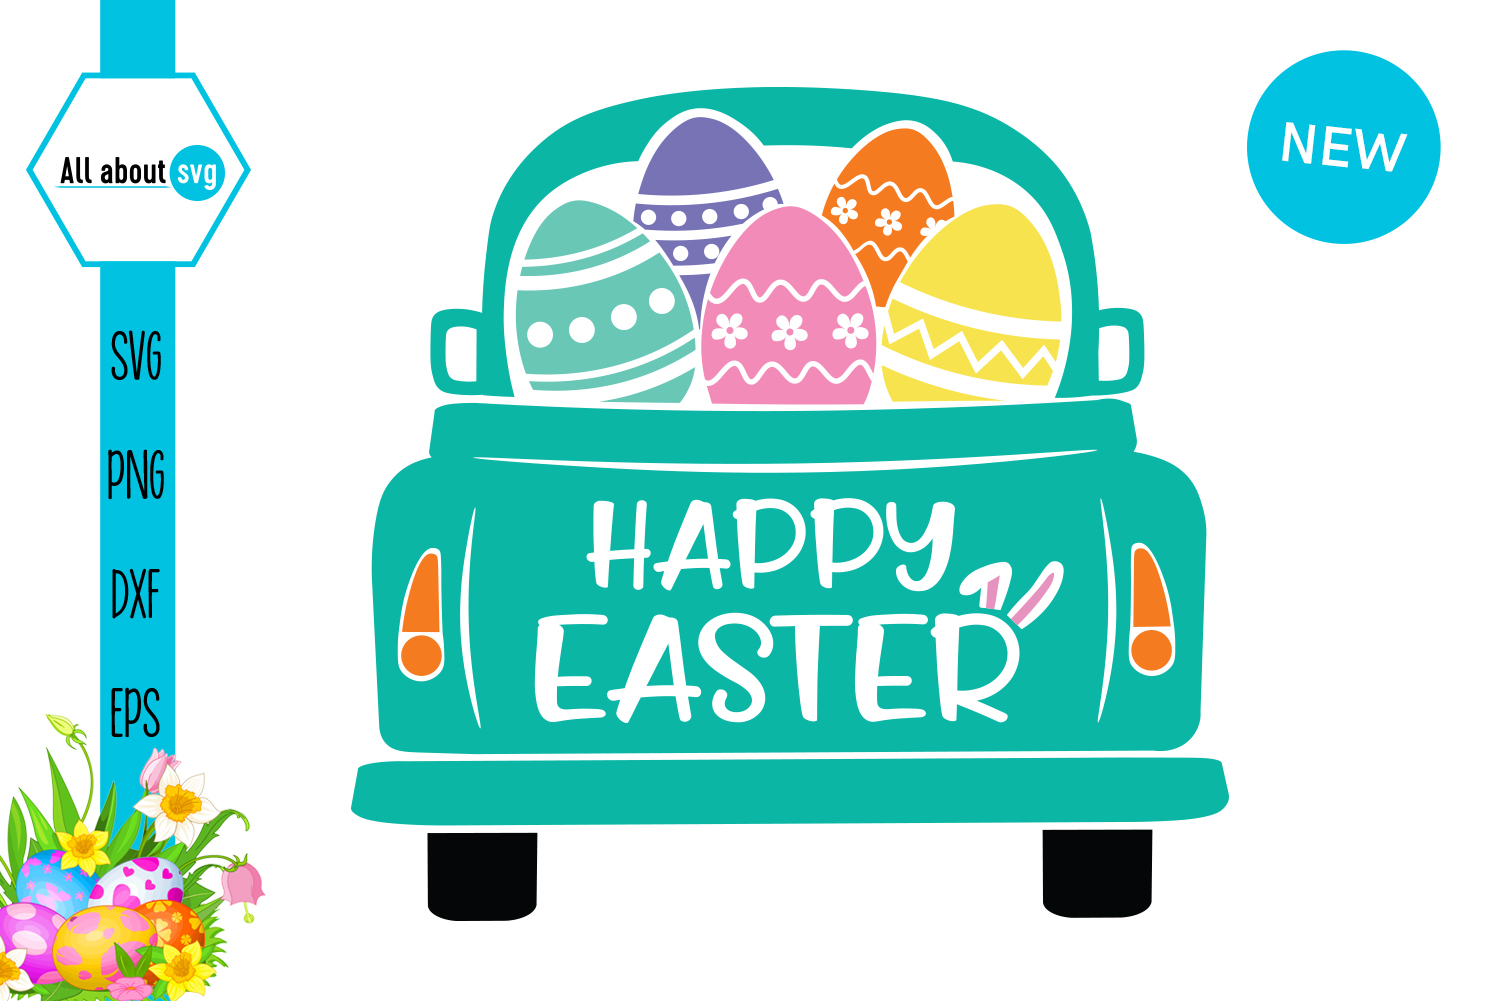 Download Free Easter Truck Graphic By All About Svg Creative Fabrica for Cricut Explore, Silhouette and other cutting machines.